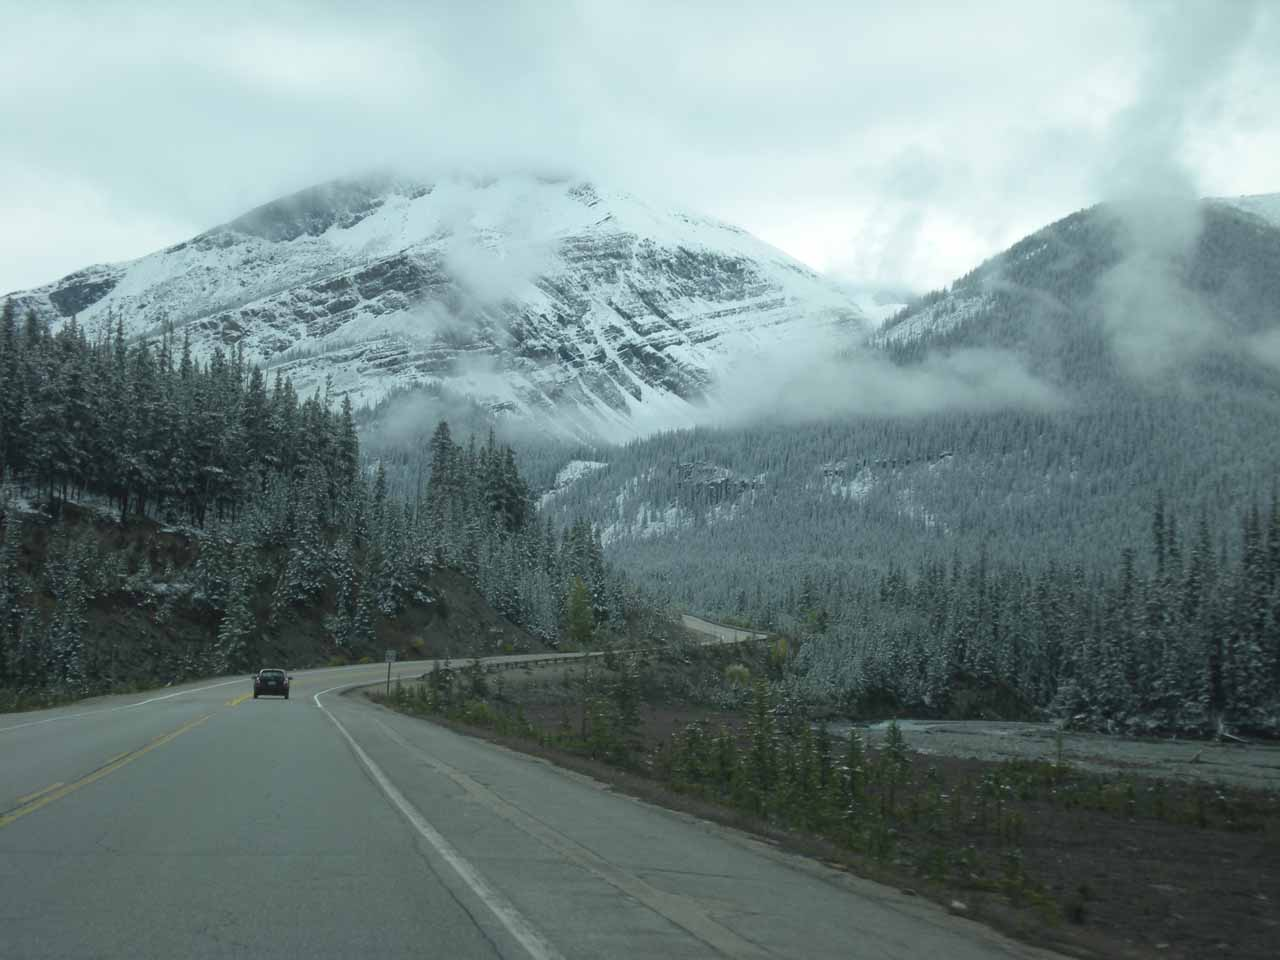 Driving through the Icefields Parkway